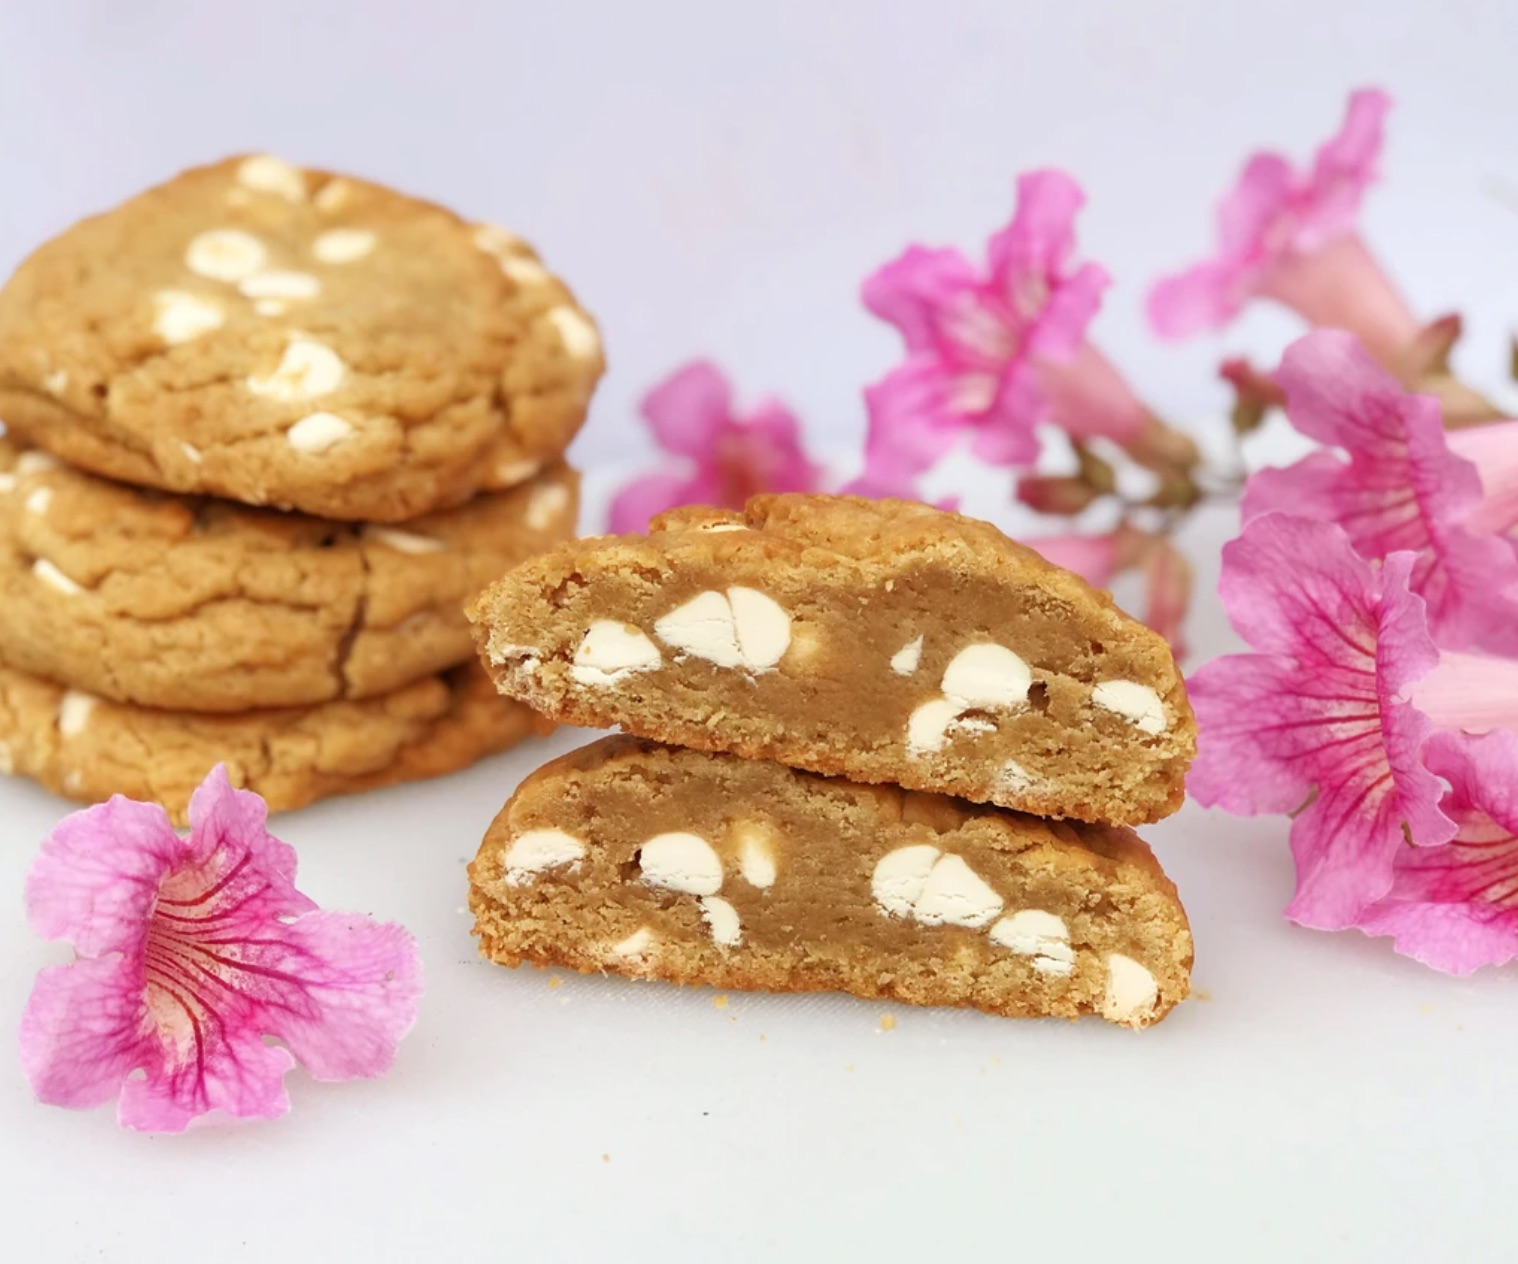 The best mail order cookies from small businesses around the country: The Maui Cookie Lady in Maui